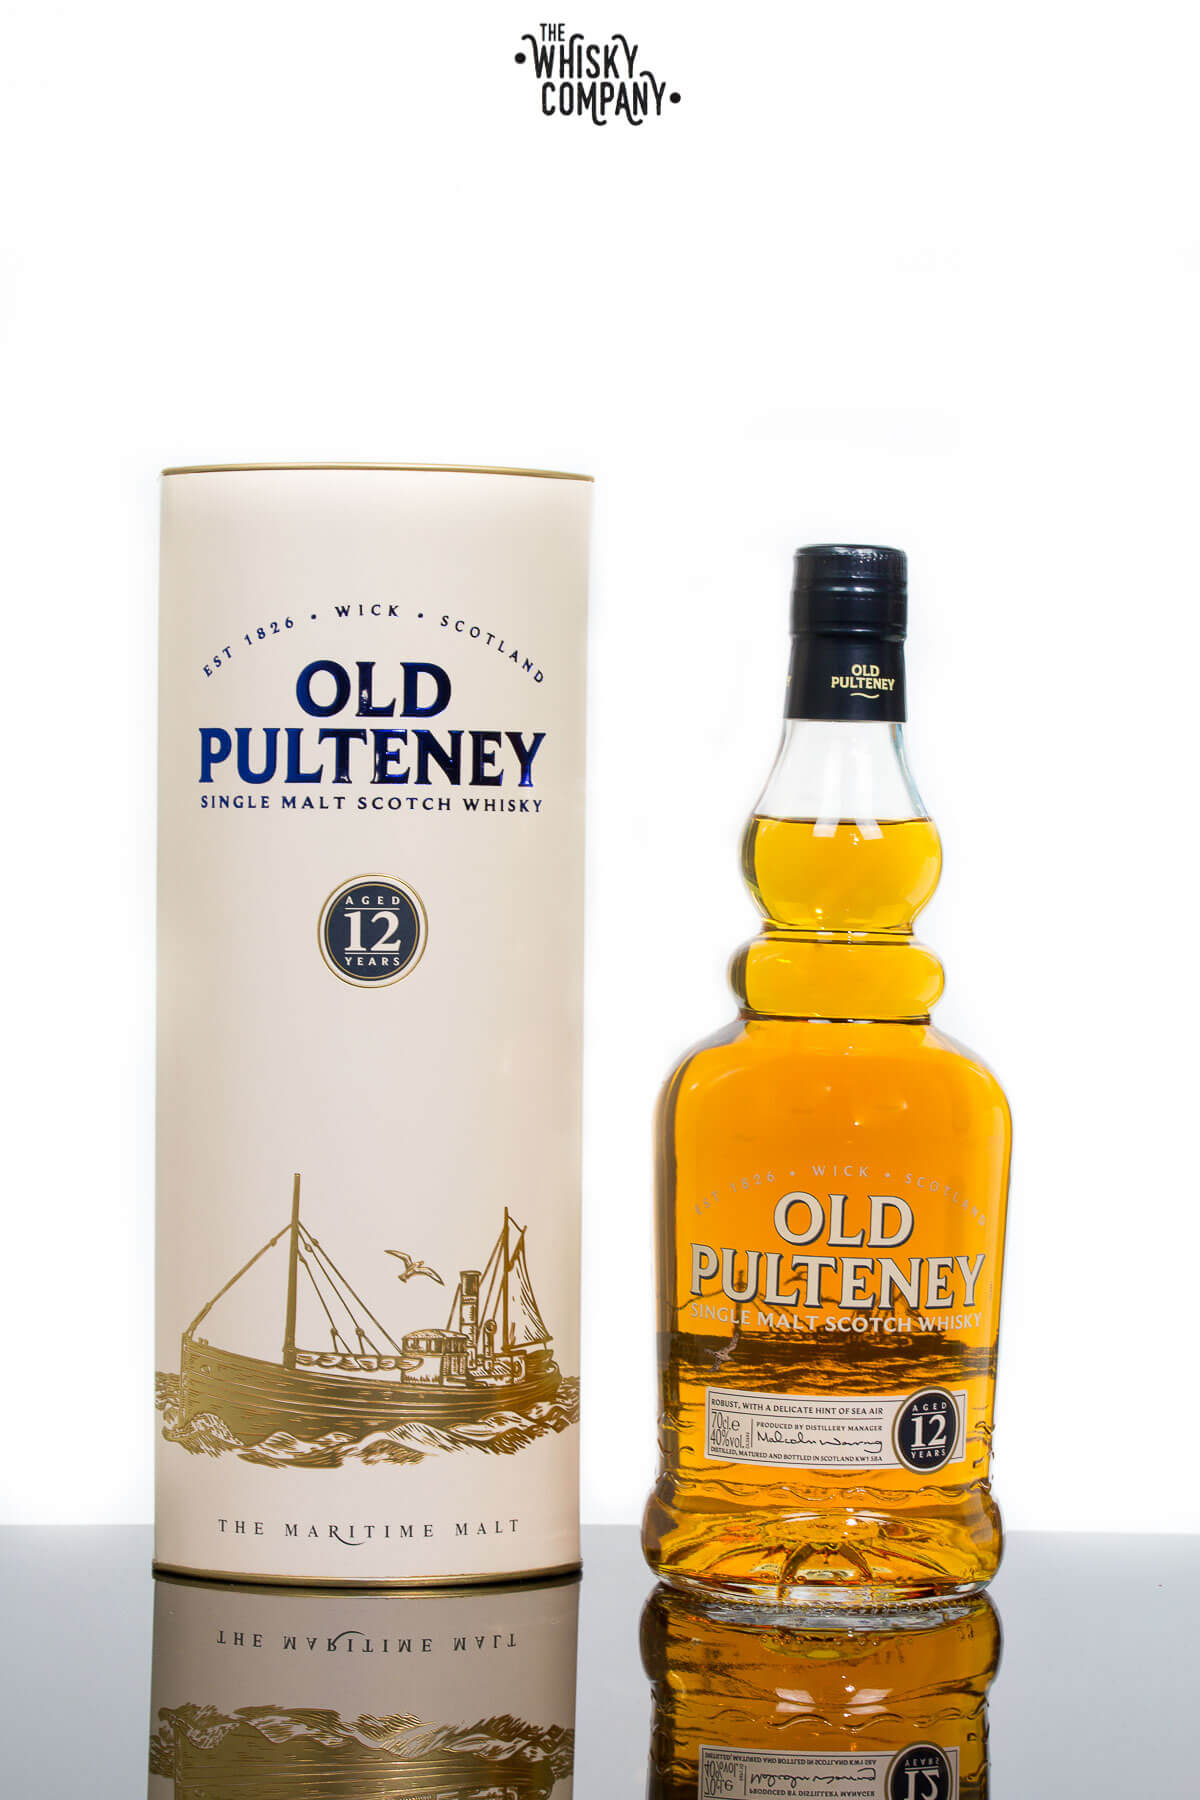 the_whisky_company_old_pulteney_aged_12_years_highland_single_malt_scotch_whisky-1-of-1